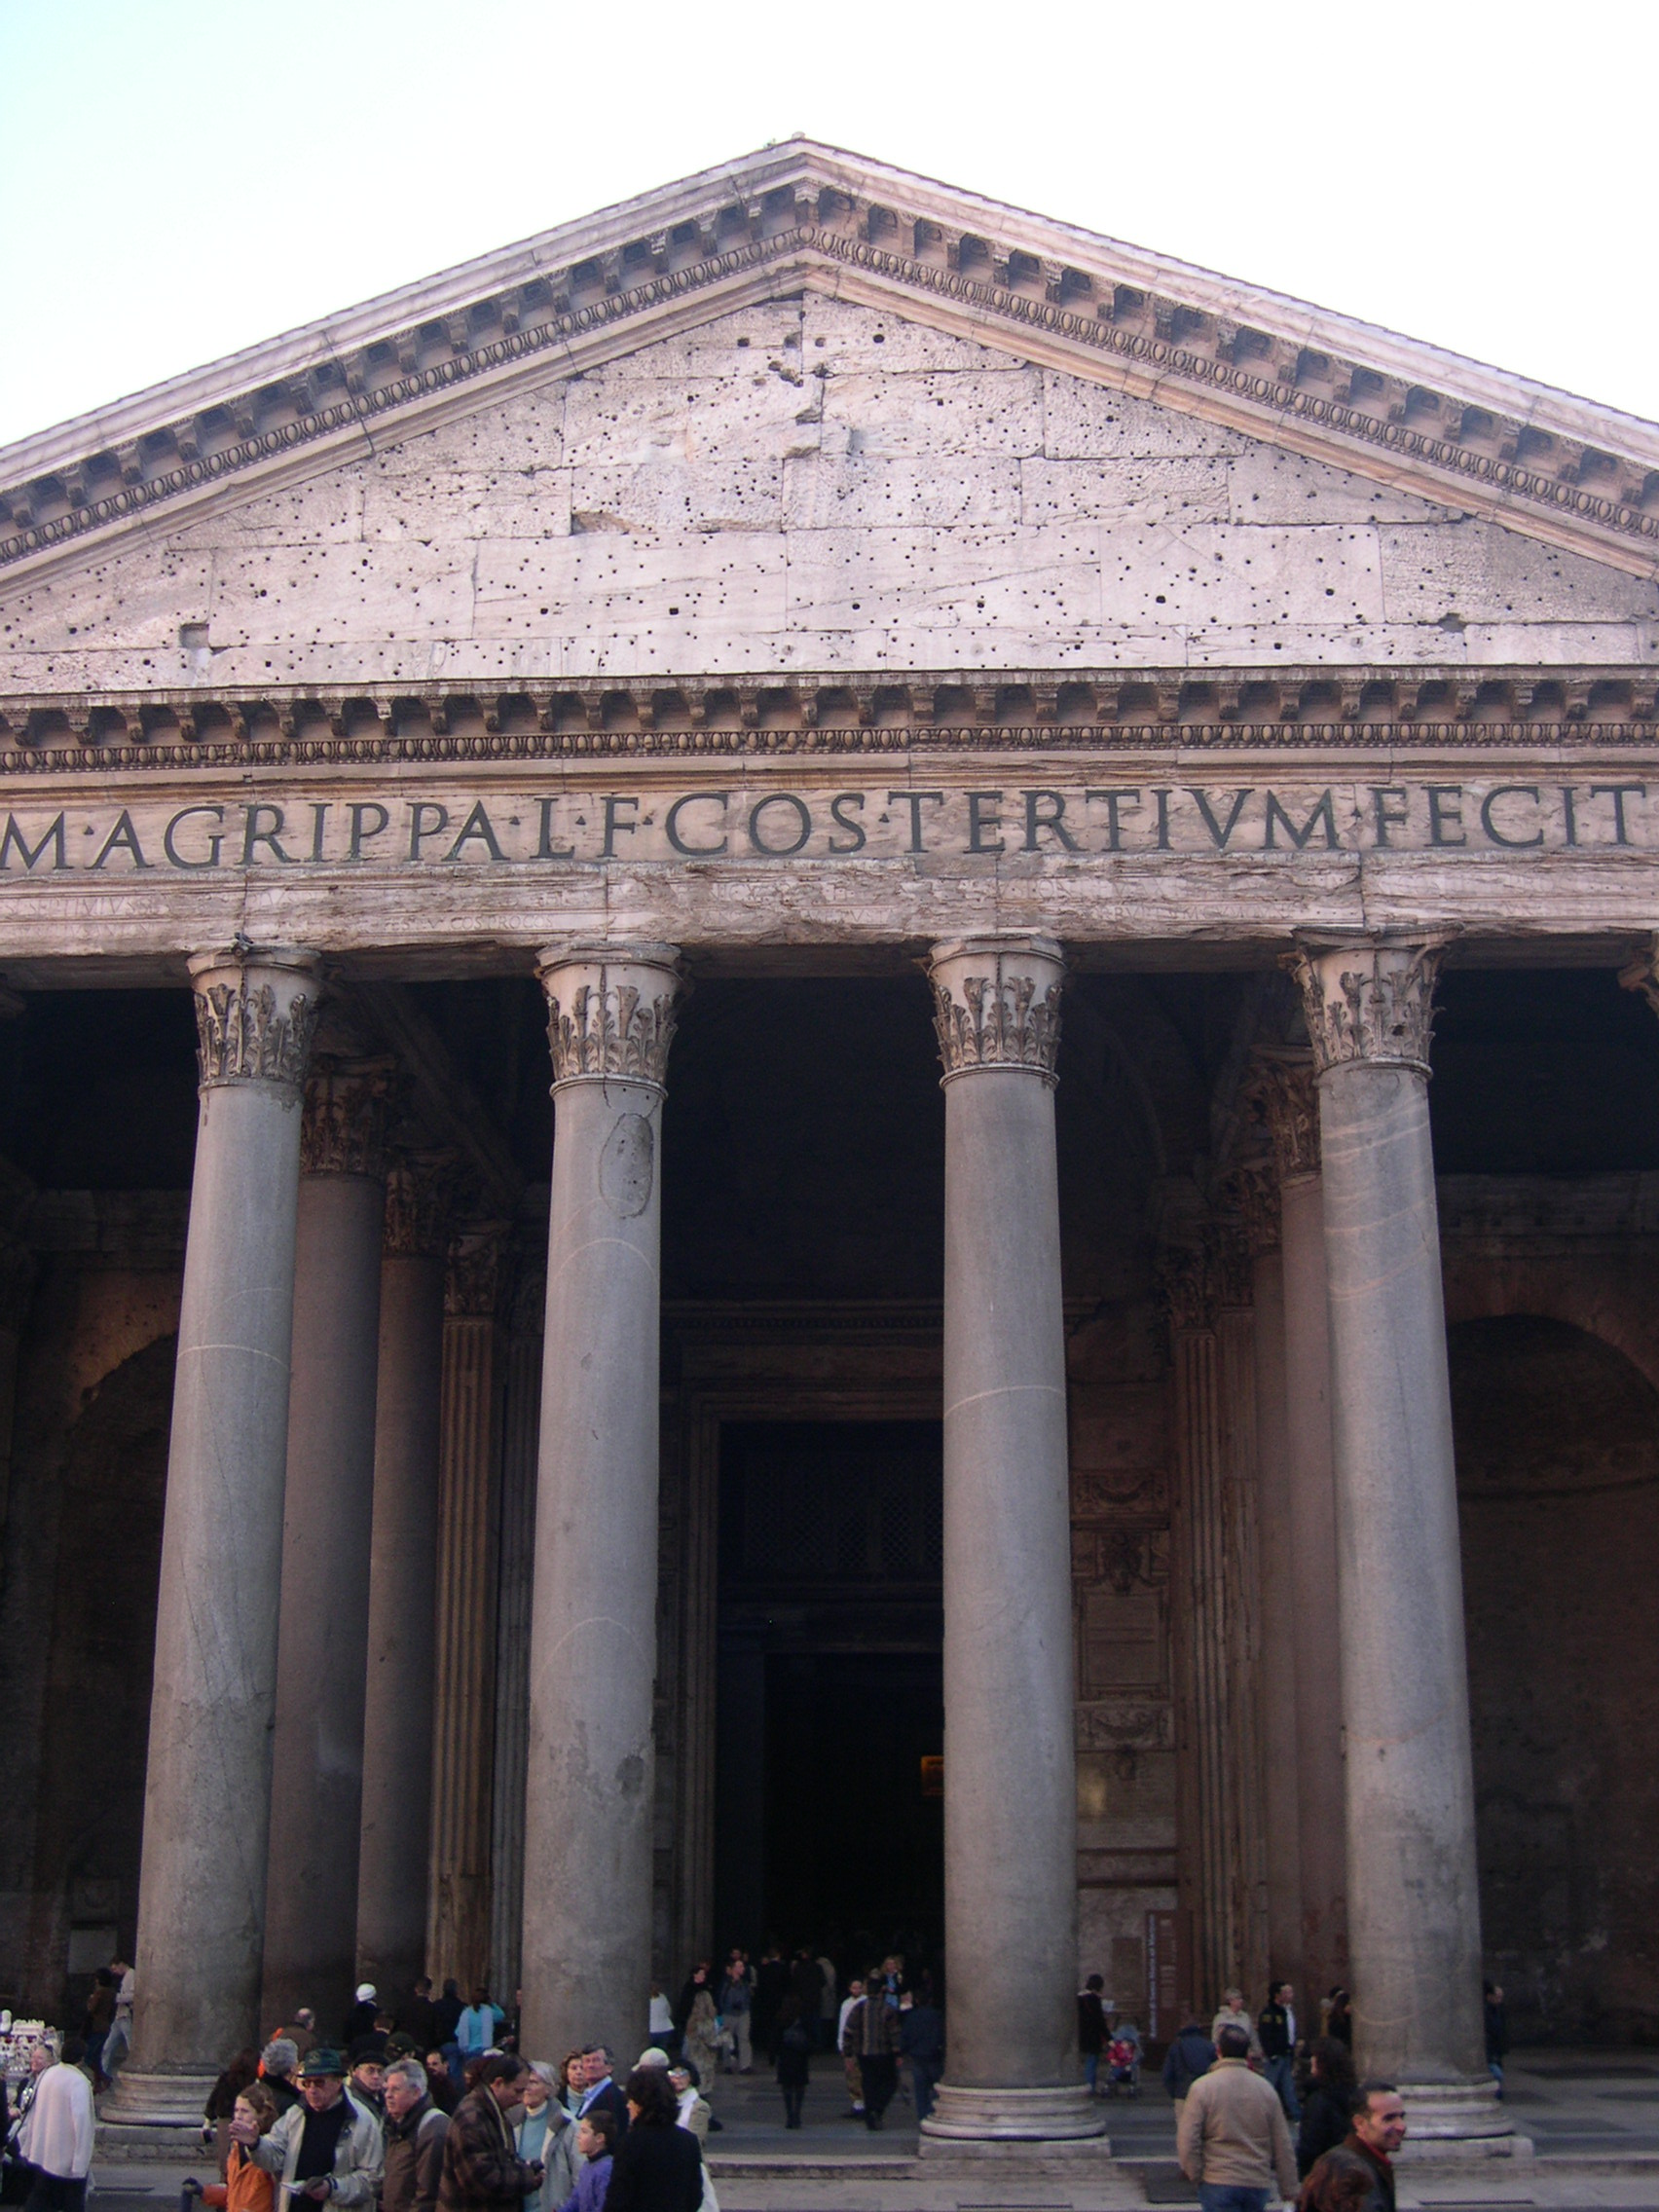 PANtheon Rome - Free ENTRY